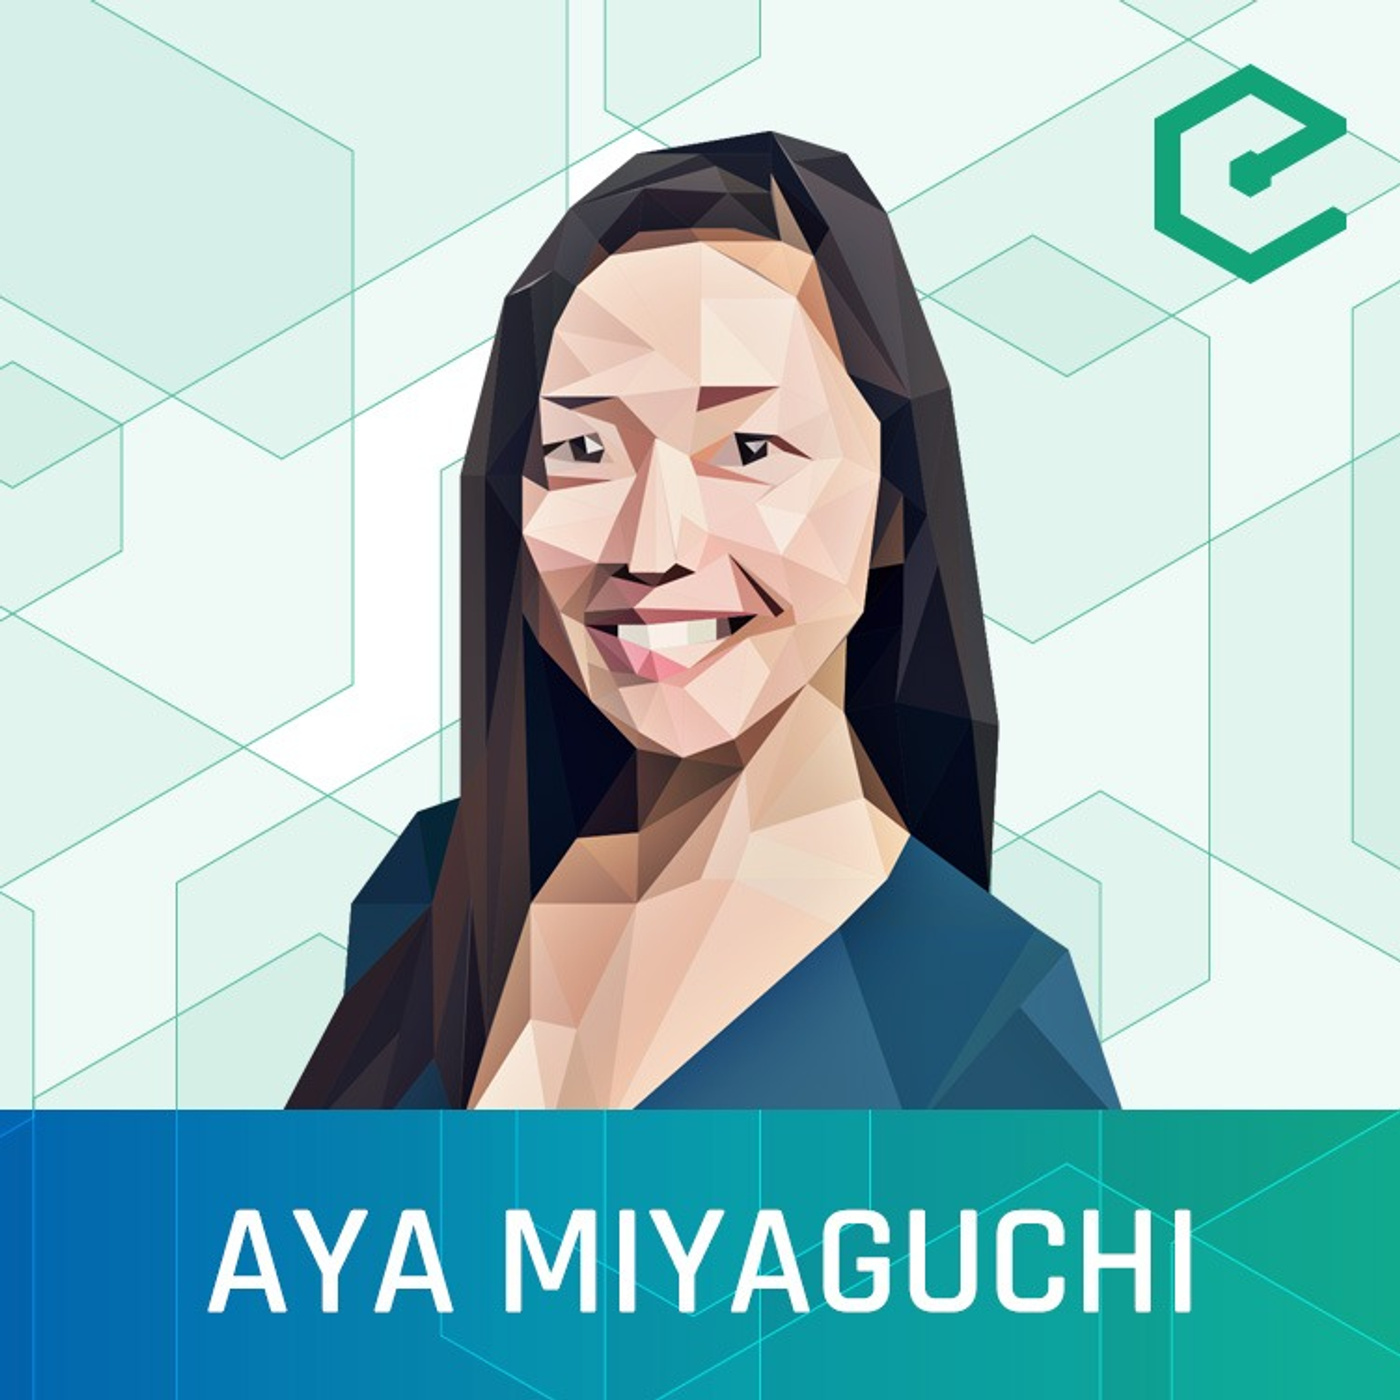 Aya Miyaguchi: The Role and Challenges of the Ethereum Foundation